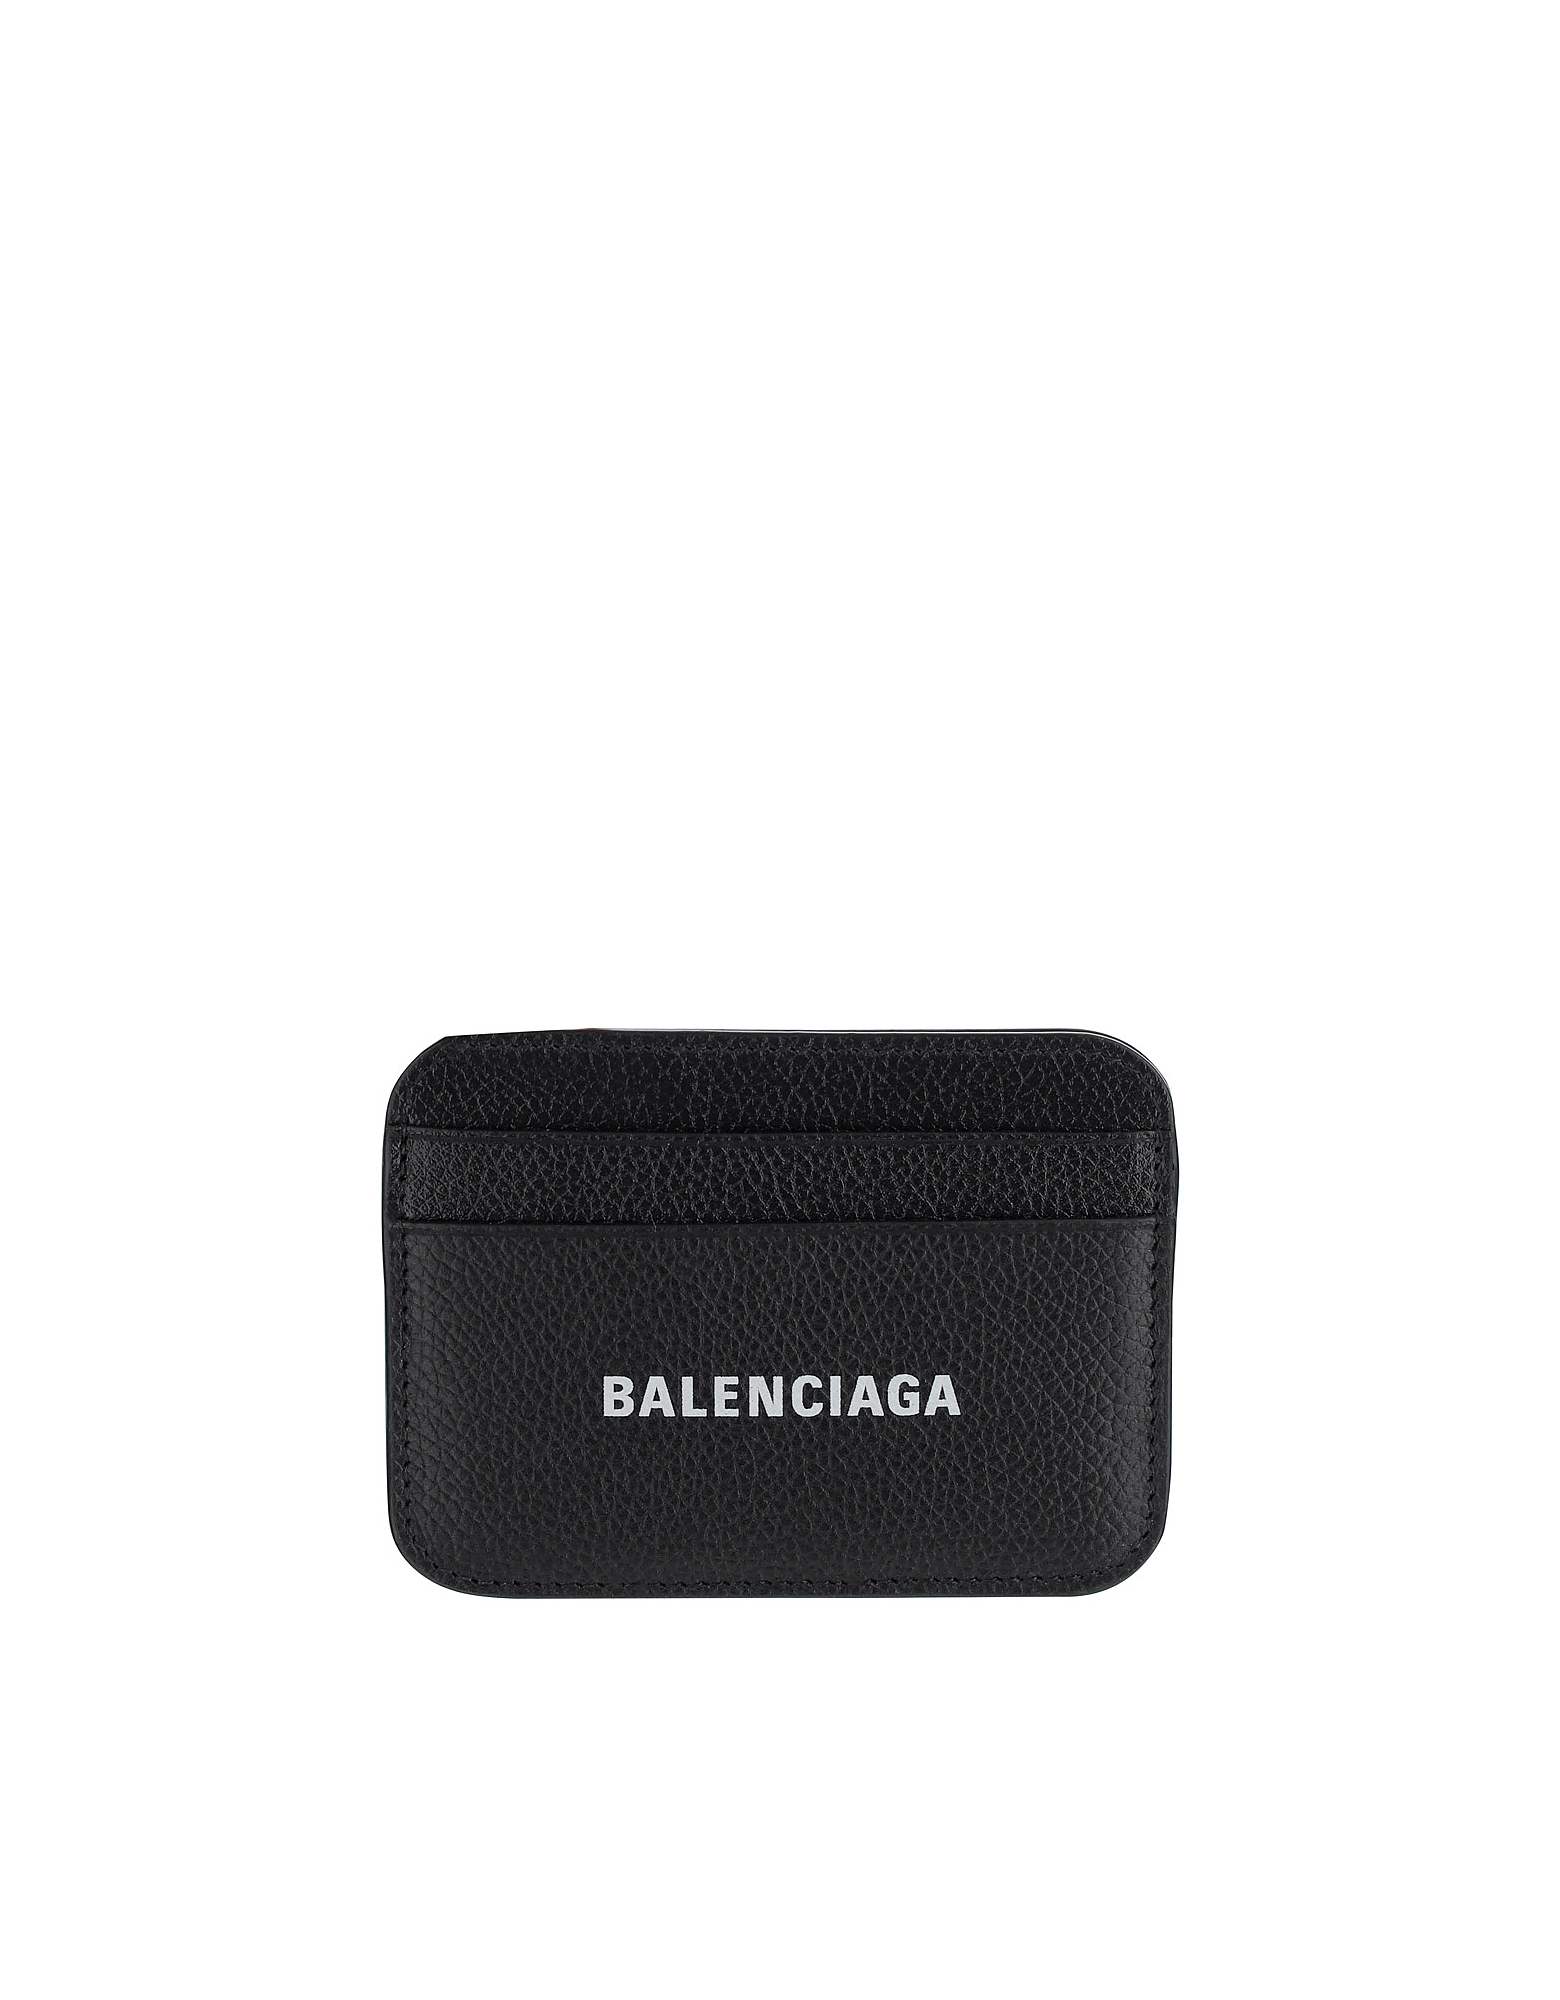 Balenciaga Designer Wallets, White wallet